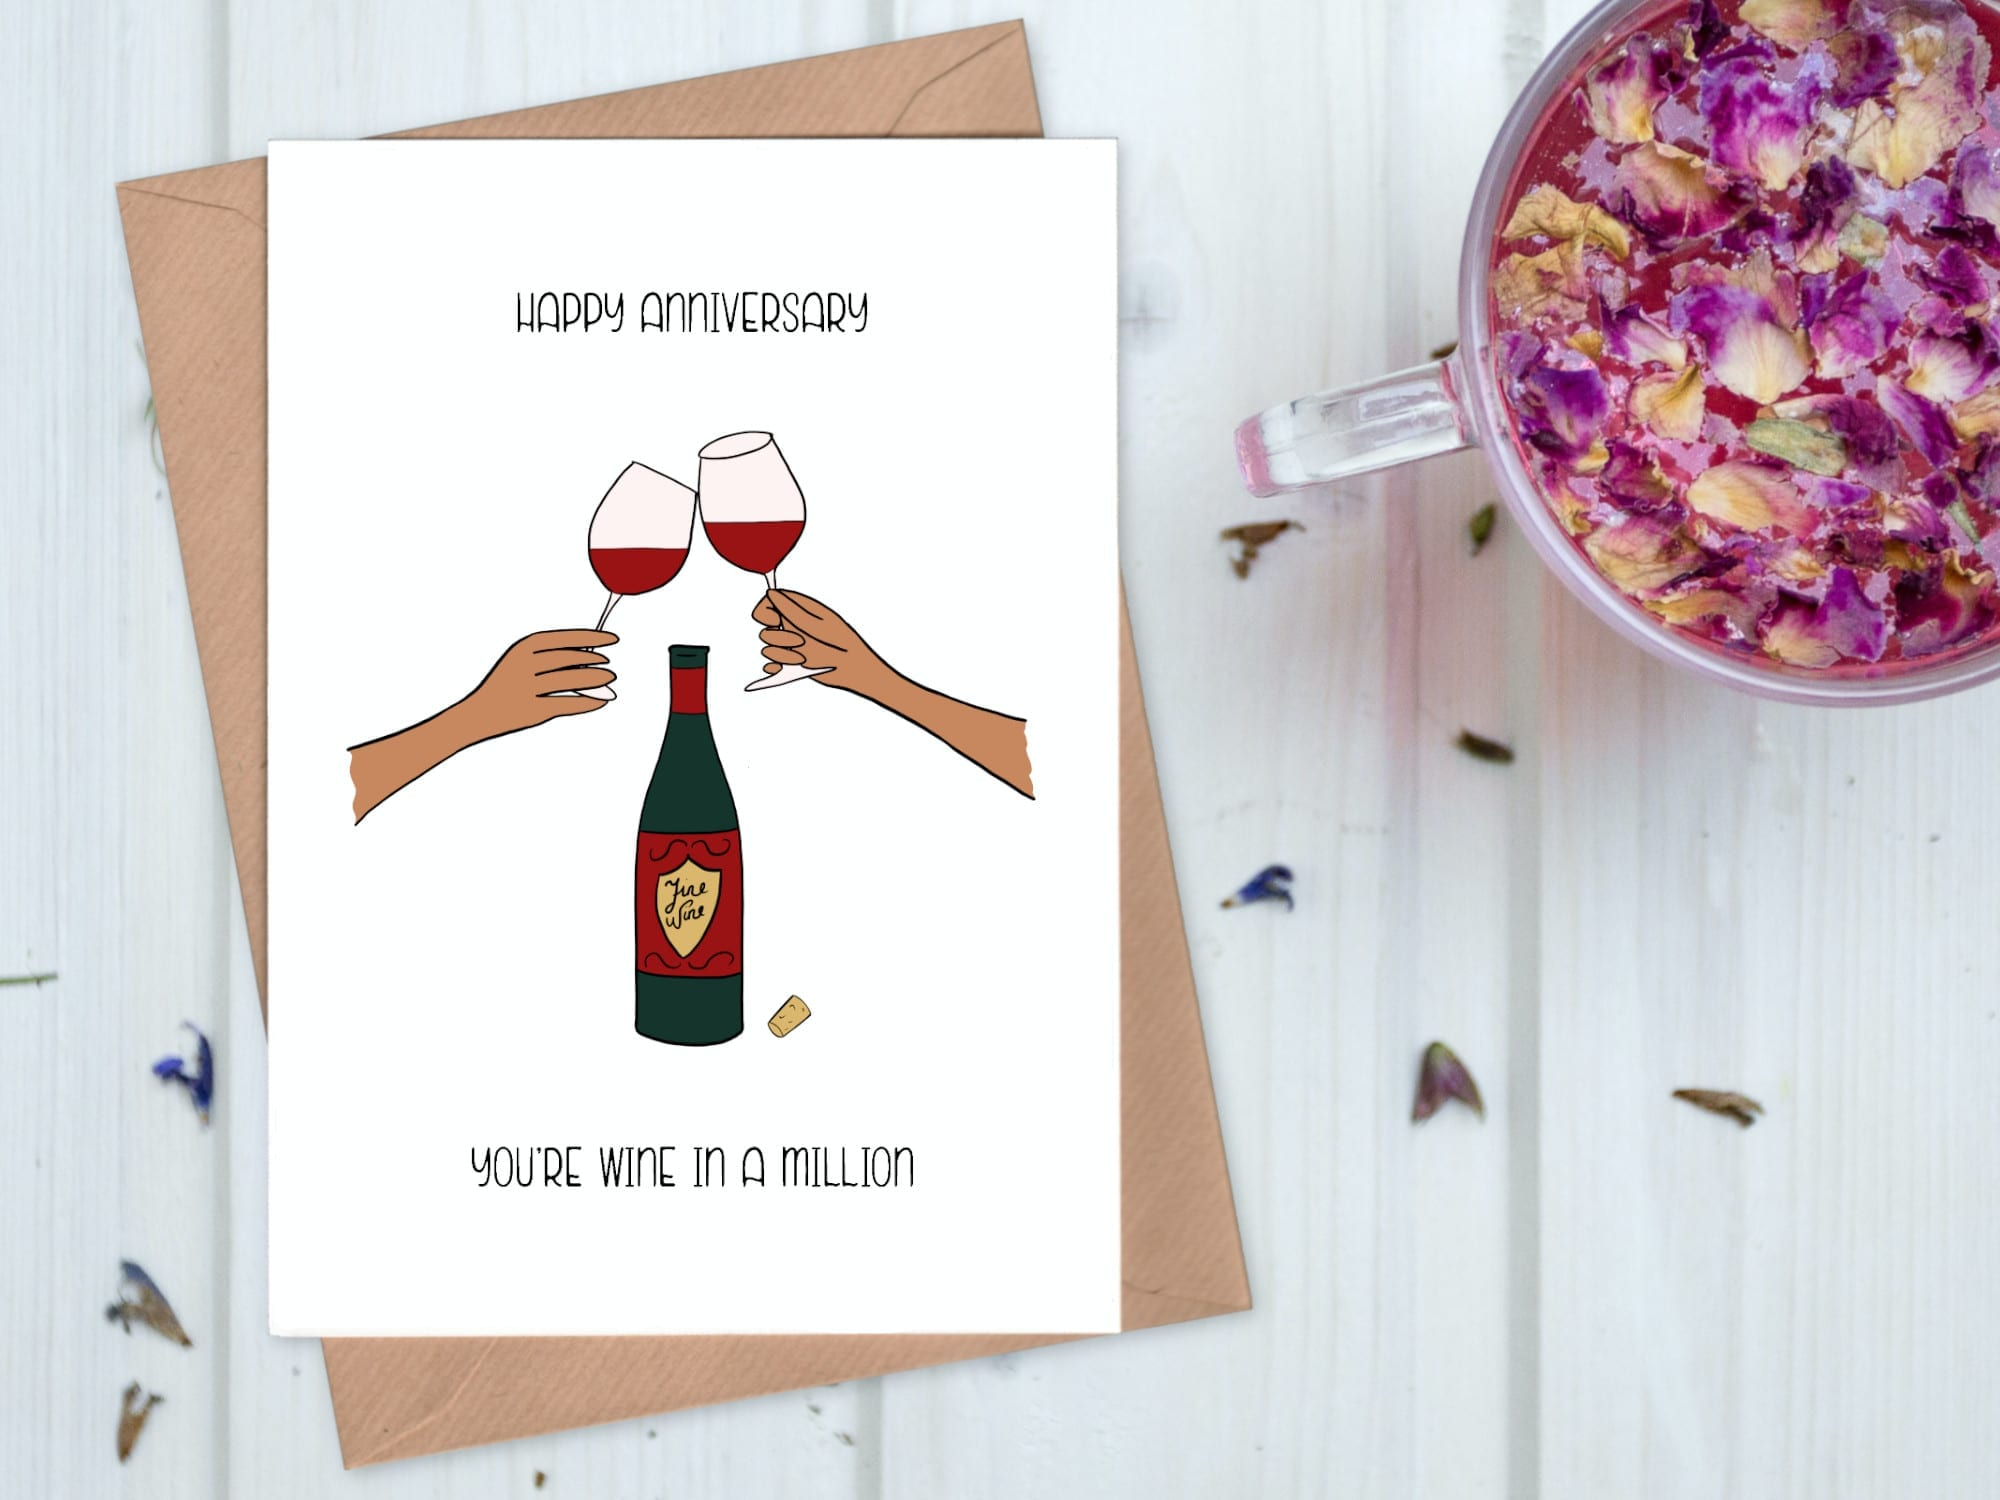 Wine in a million anniversary card - red wine